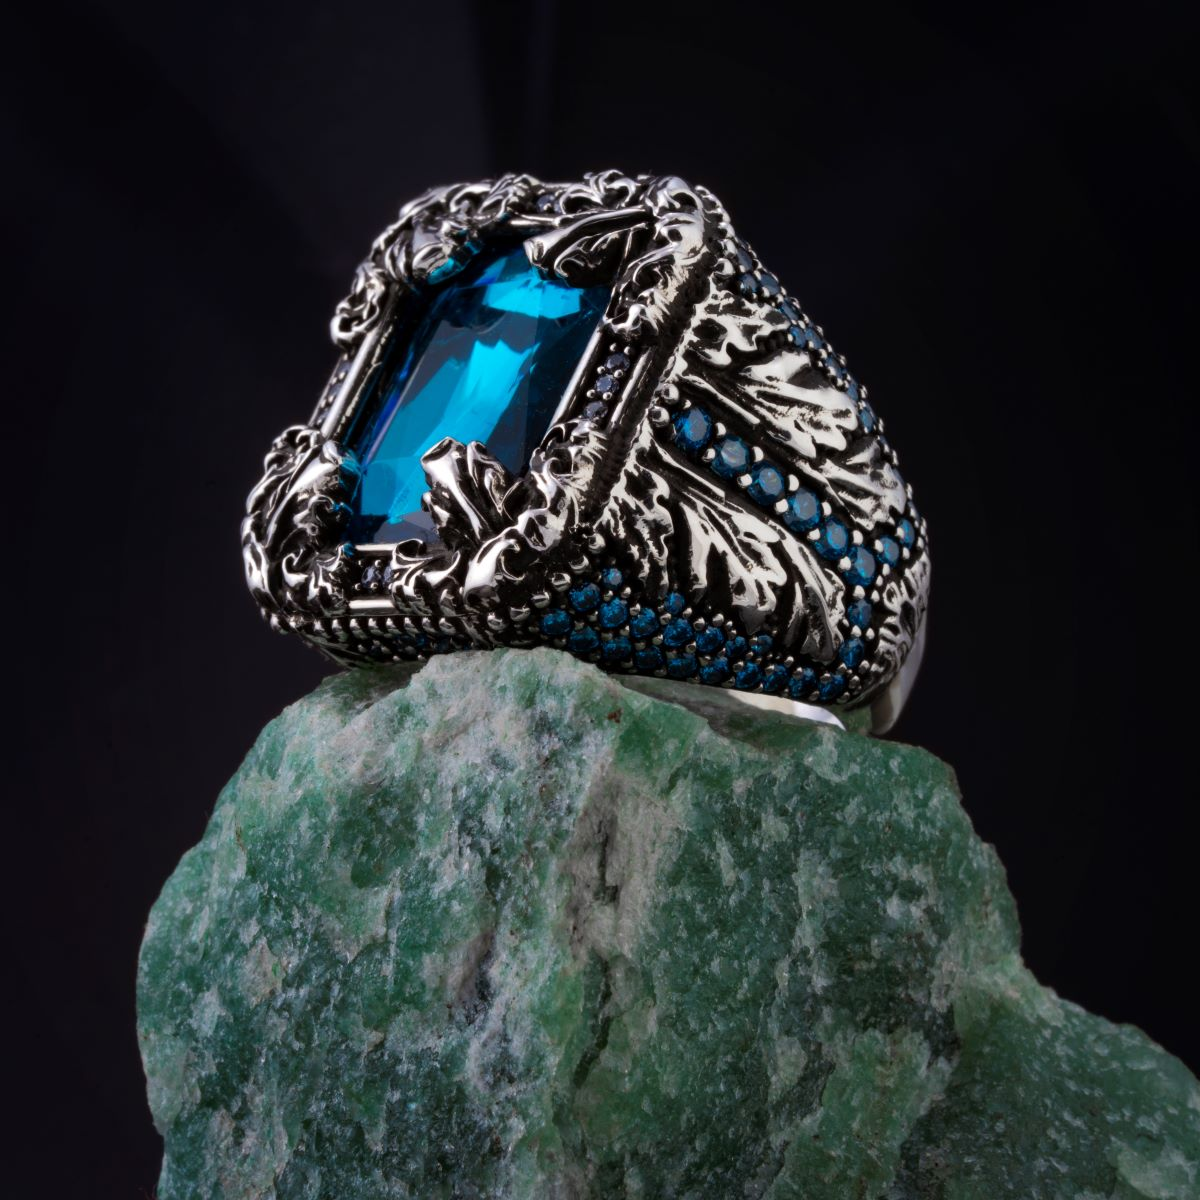 High-quality 925 Sterling Silver SWAROVSKİ CRYS STONE ring Jewelry Made in Turkey in a luxurious way for men with gift